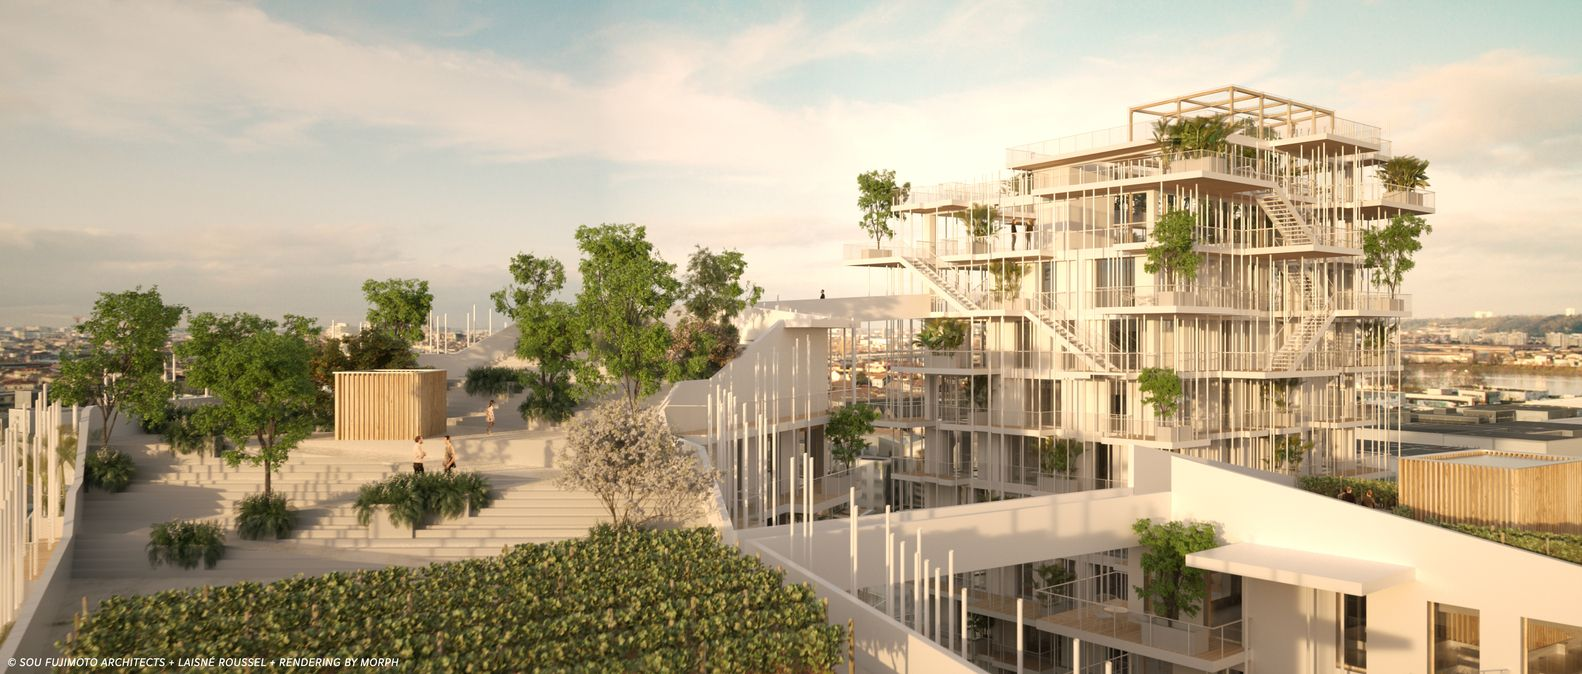 Gallery of Sou Fujimoto and Laisné Roussel Propose Wooden Mixed-Use ...